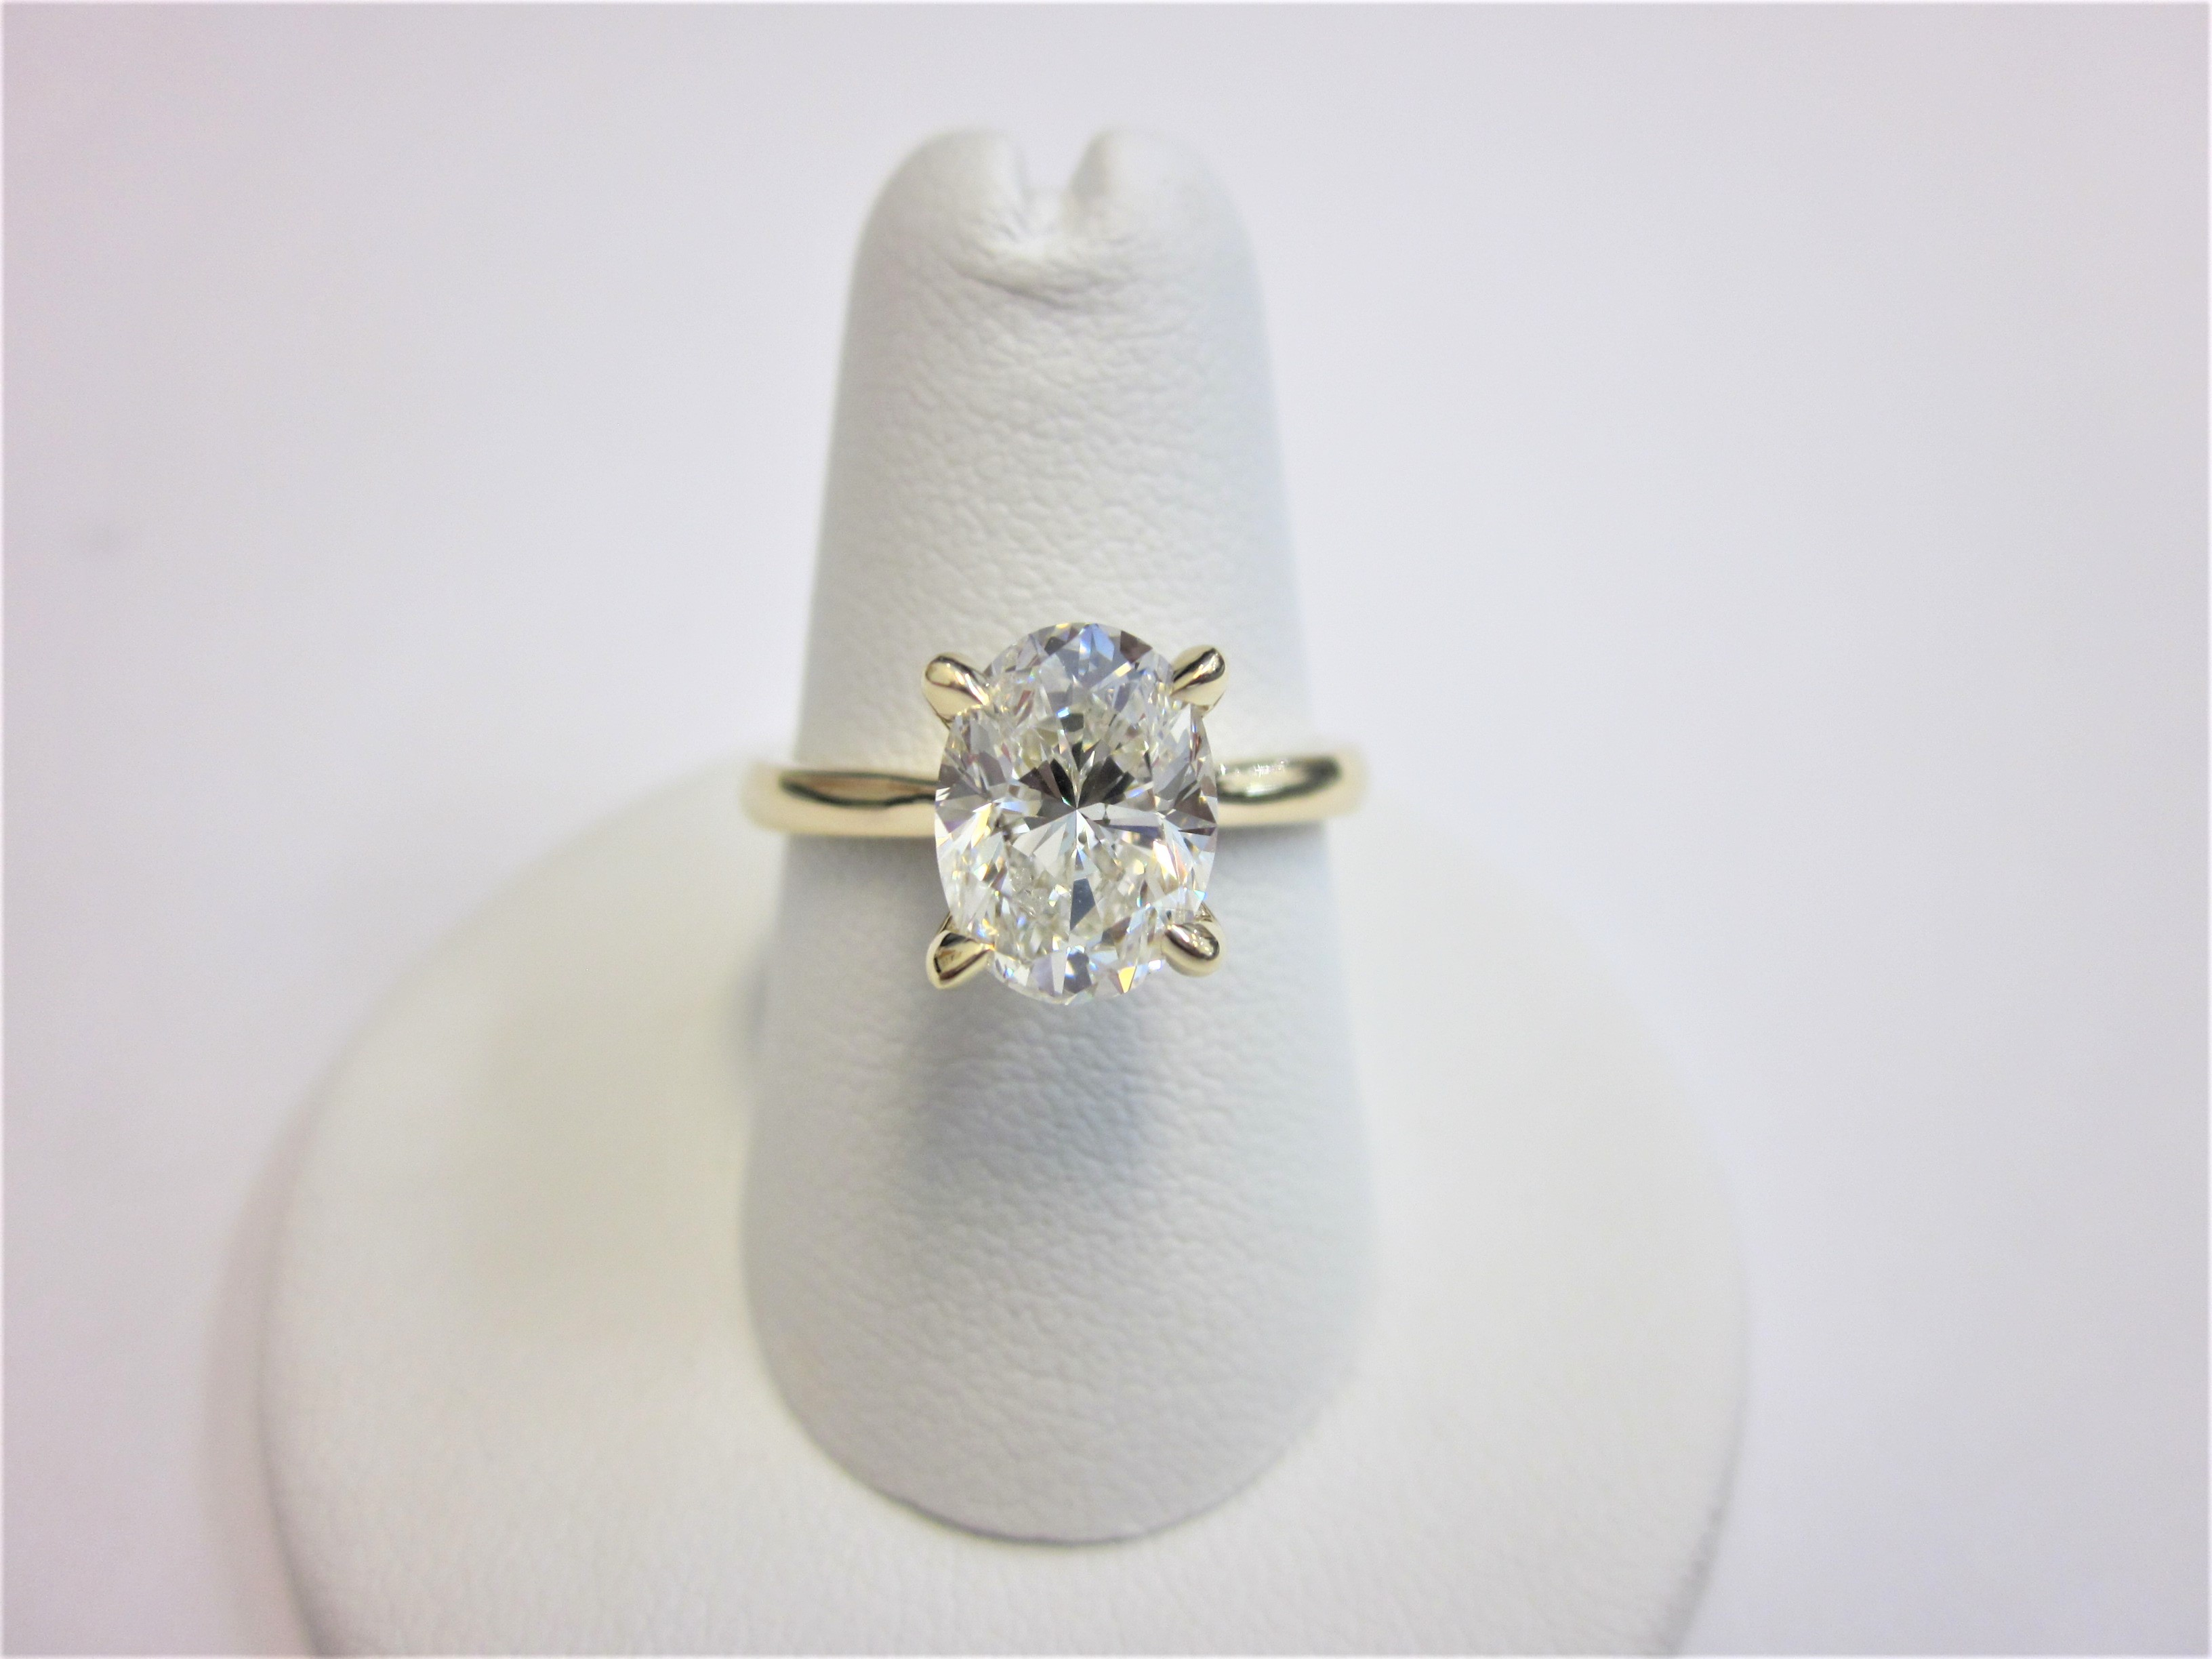 rings tapered group platinum and center baguettes round adamine diamond cut with stone carat engagement brilliant